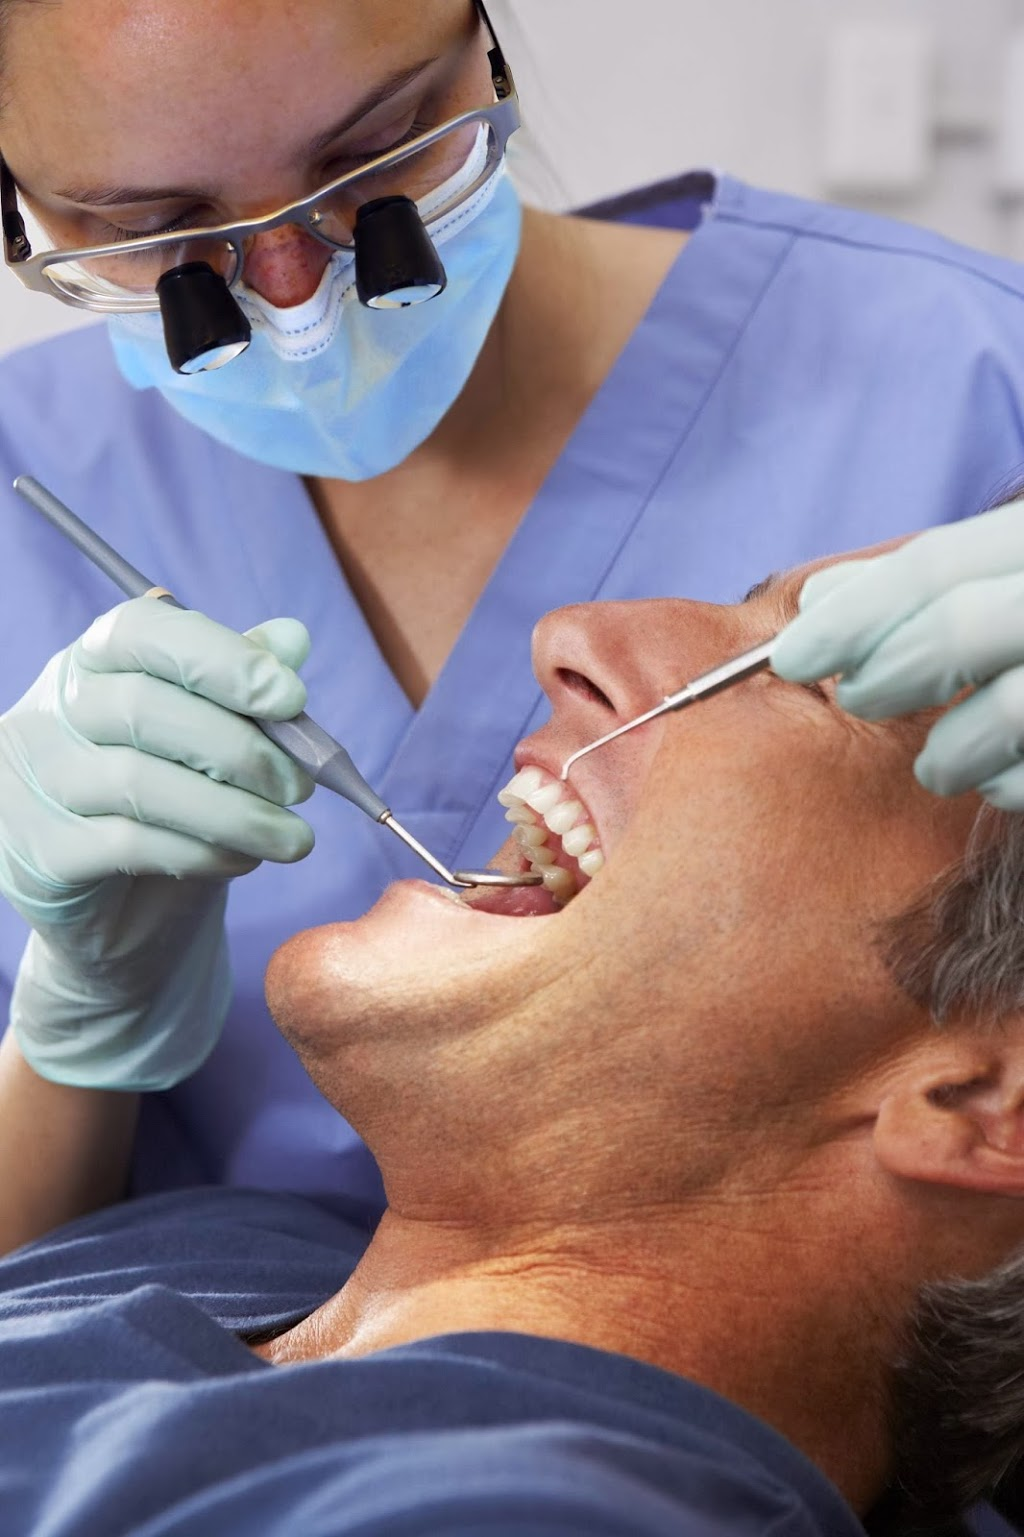 Gleaming Dental Surgery | dentist | 6/53 Gladesville Rd, Hunters Hill NSW 2110, Australia | 0298175302 OR +61 2 9817 5302